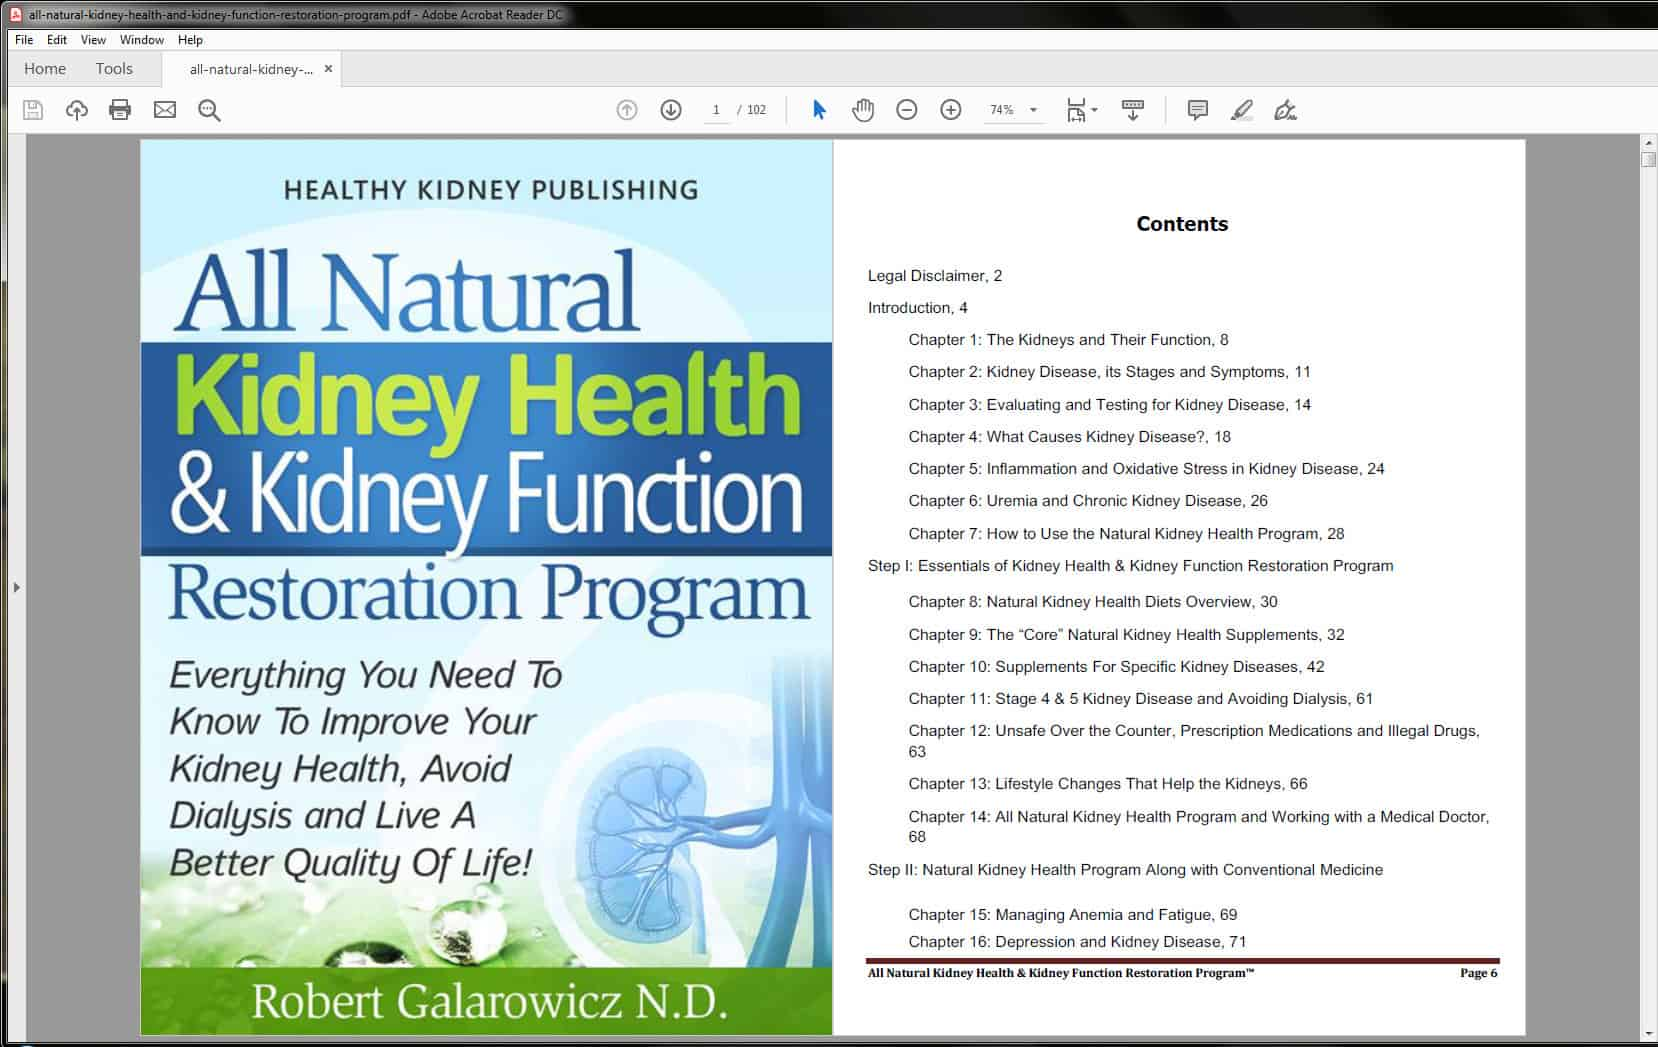 All Natural Kidney Health & Kidney Function Restoration Program table of contents